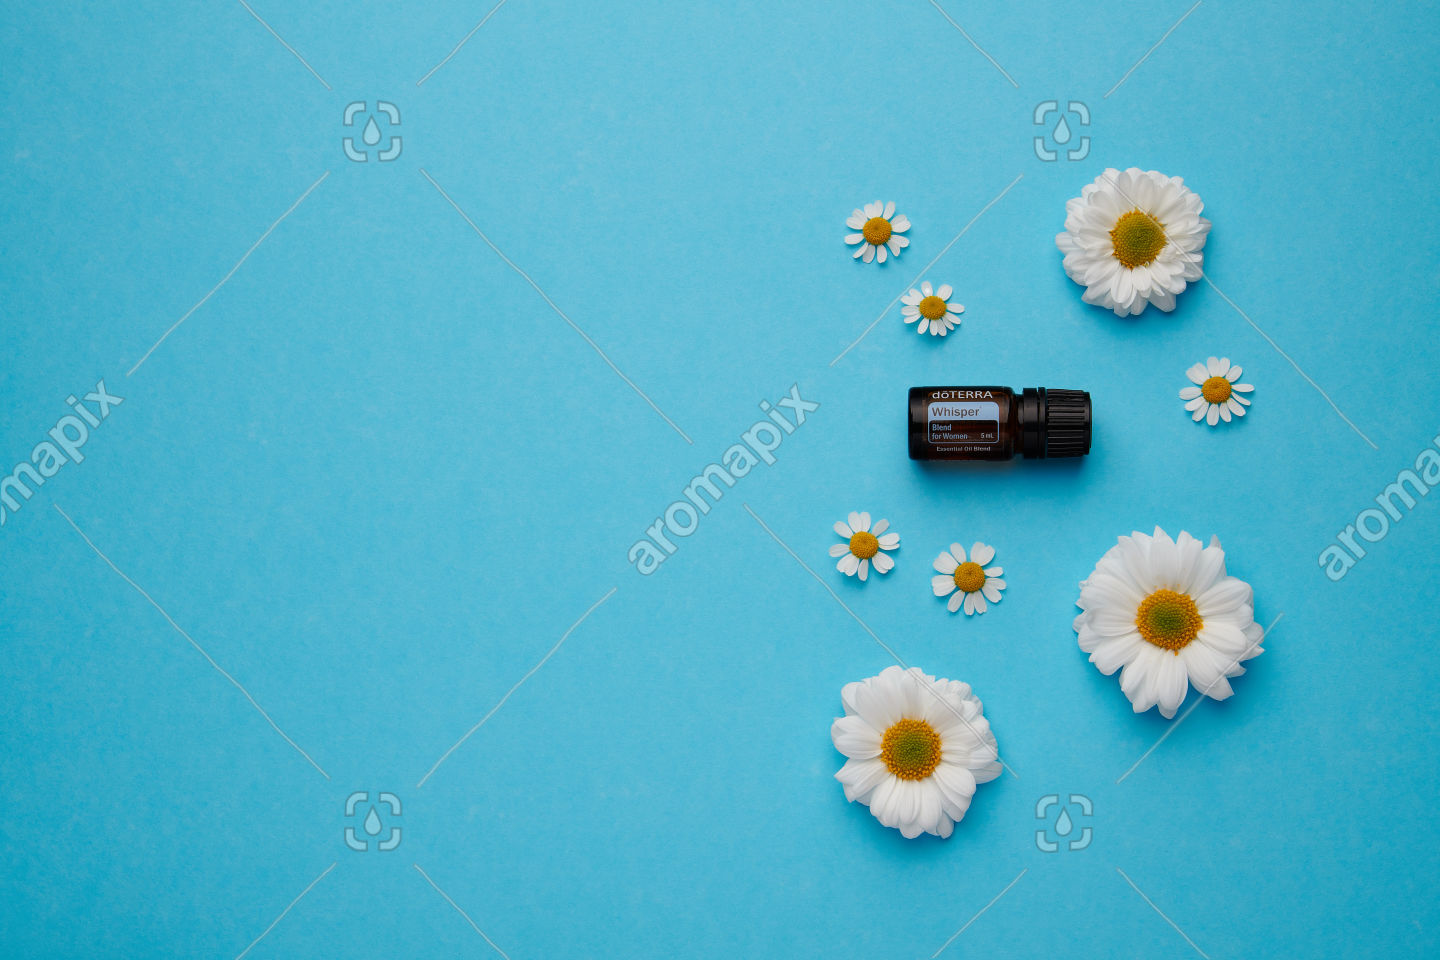 doTERRA Whisper with flowers on blue